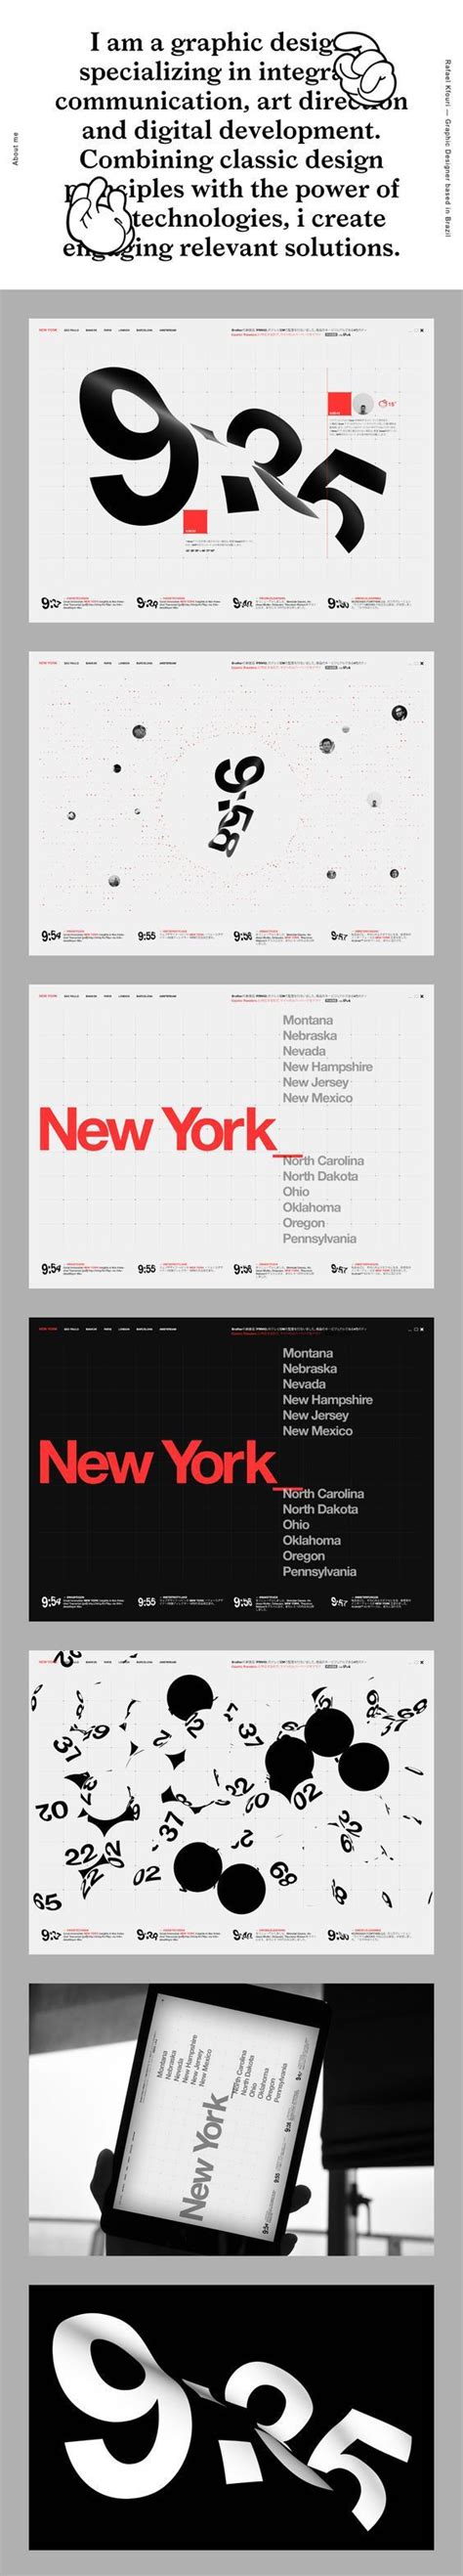 font design layout 4036 best ux ui images on pinterest